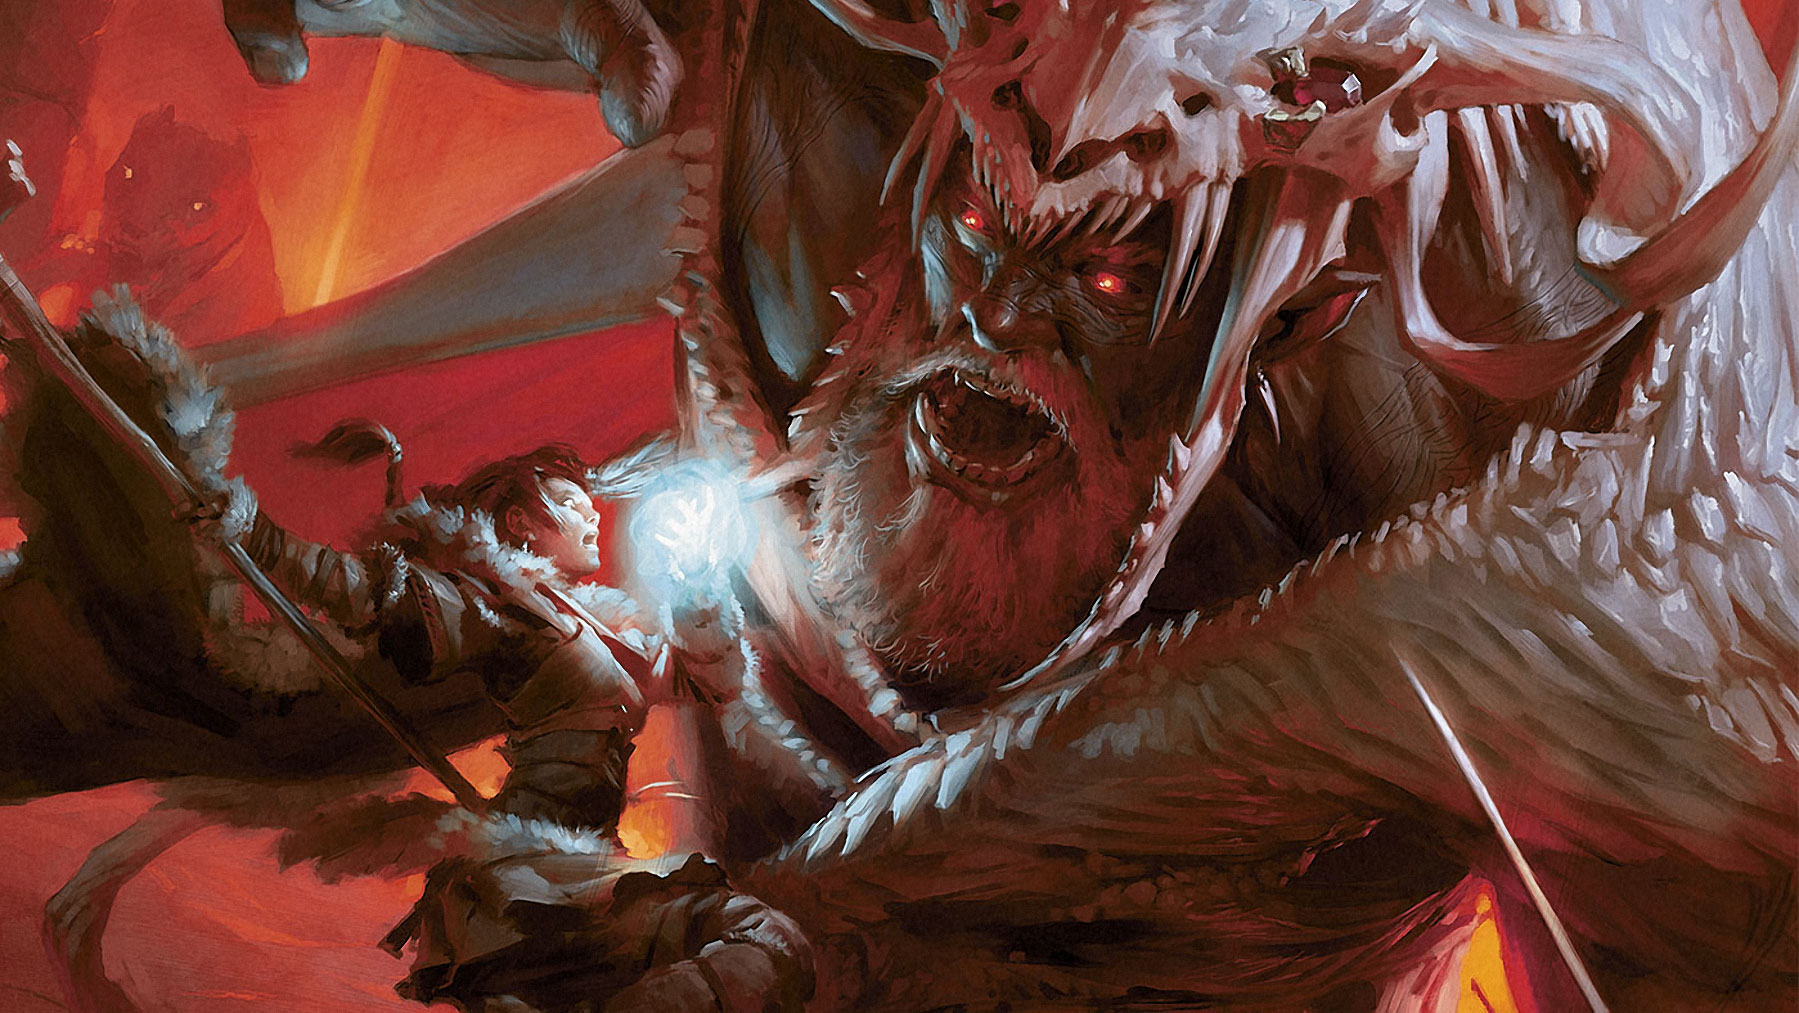 And dragons daggerdale skidrow crack dungeons and dragons daggerdale